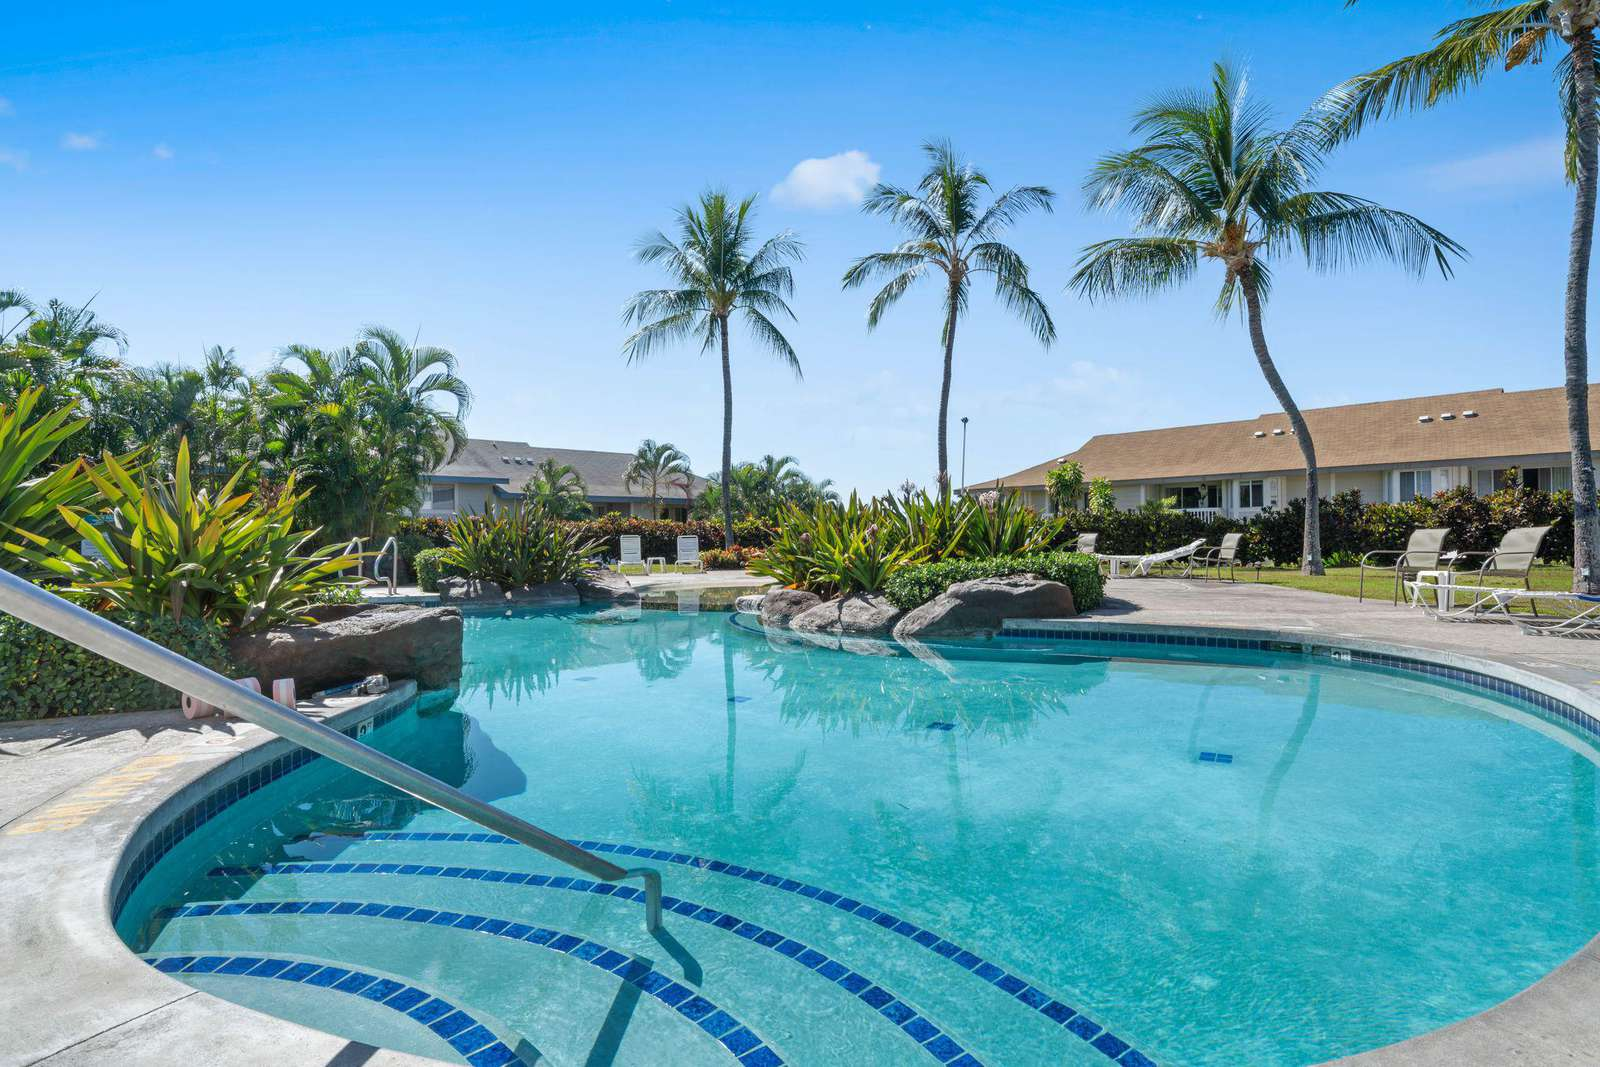 One of 2 swimming pools.